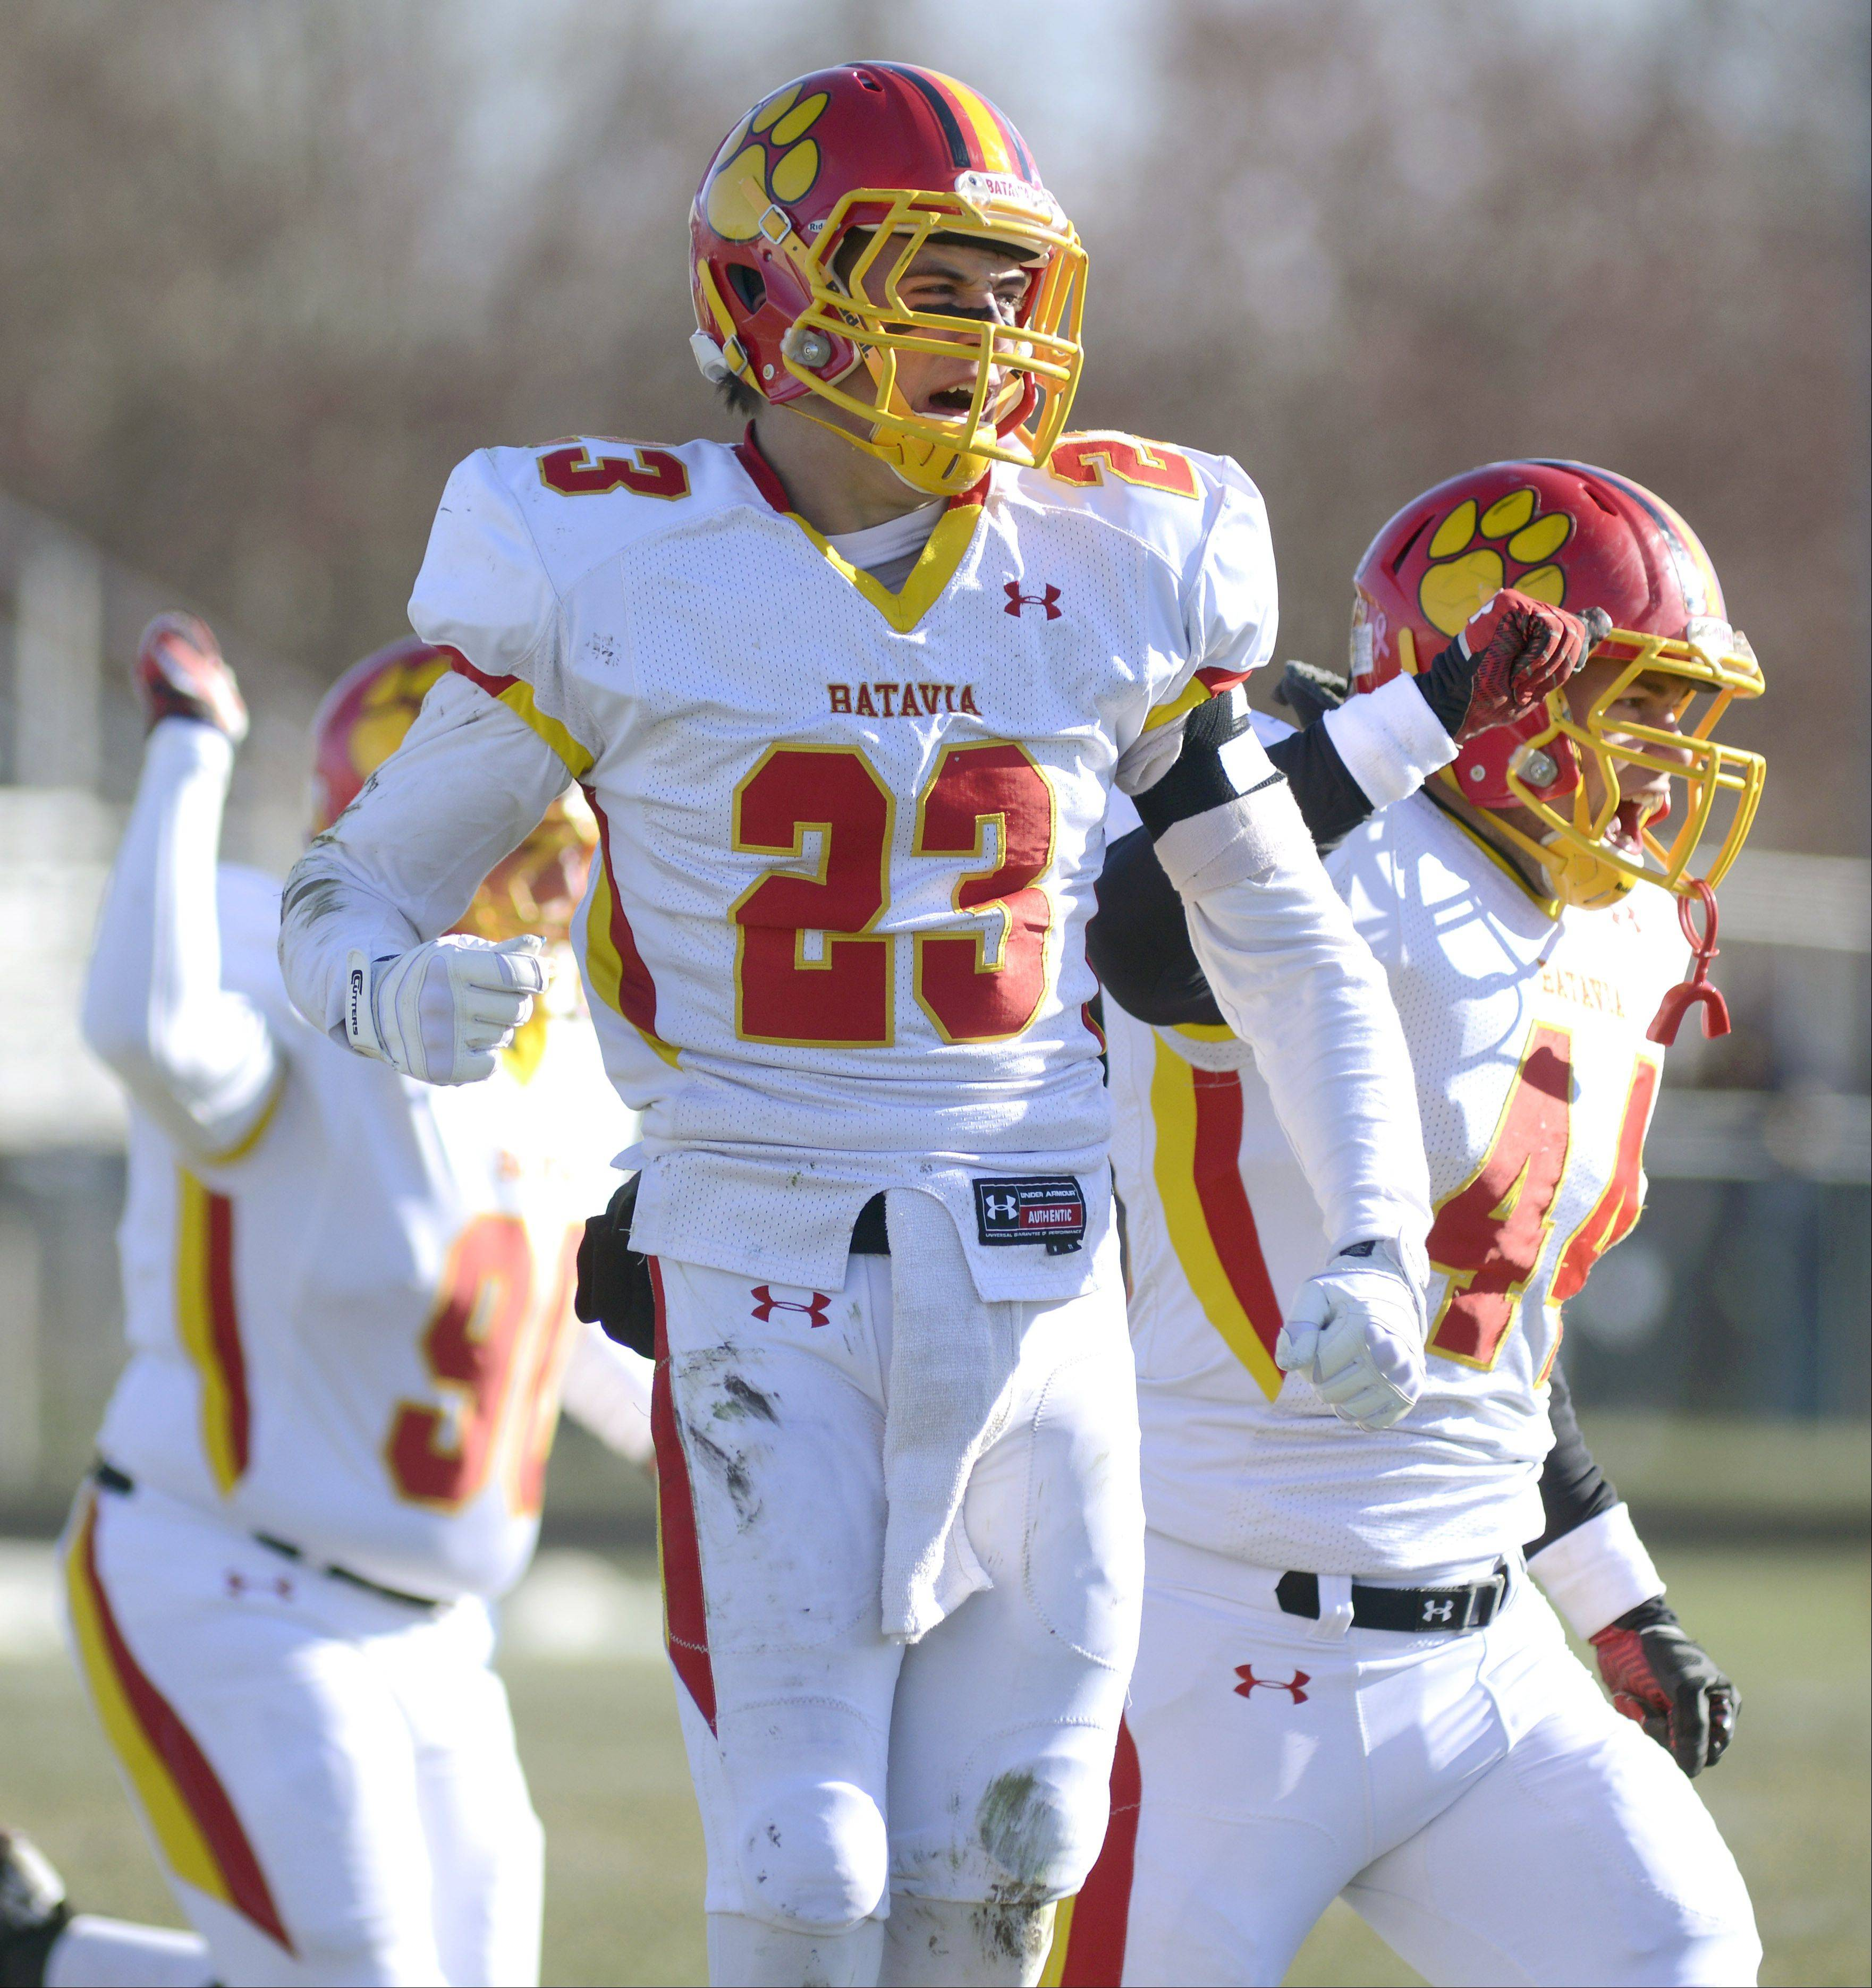 Batavia's Michael Moffatt (23) and Noah Frazier (44) celebrate a Rockford Boylan fumble recovered by the Bulldogs in the first quarter of the Class 6A semifinal game on Saturday, November 23.